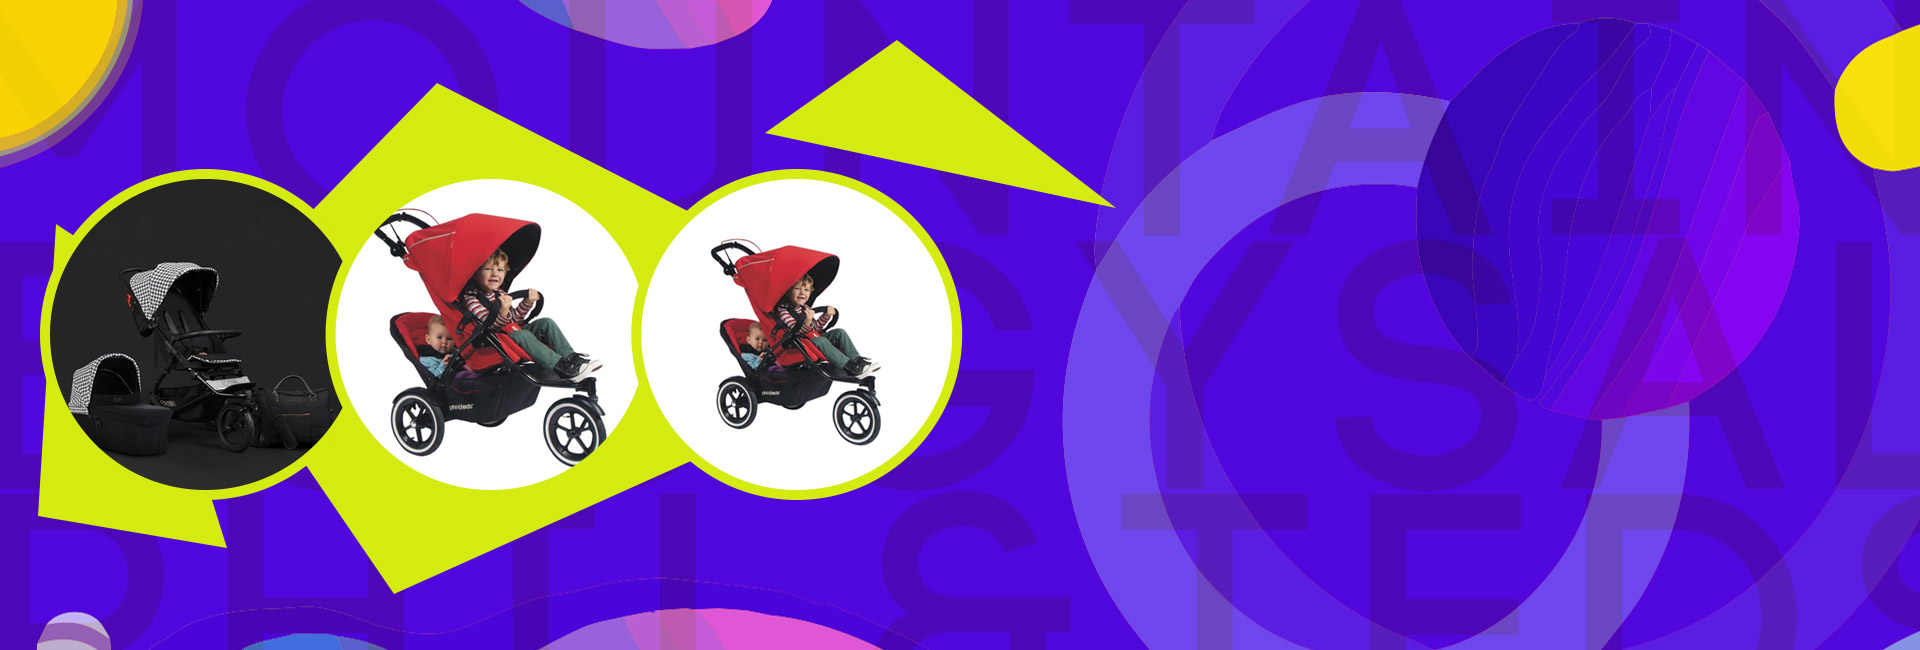 Buy bye sale up to 40% off mountain buggy and phil and teds sale